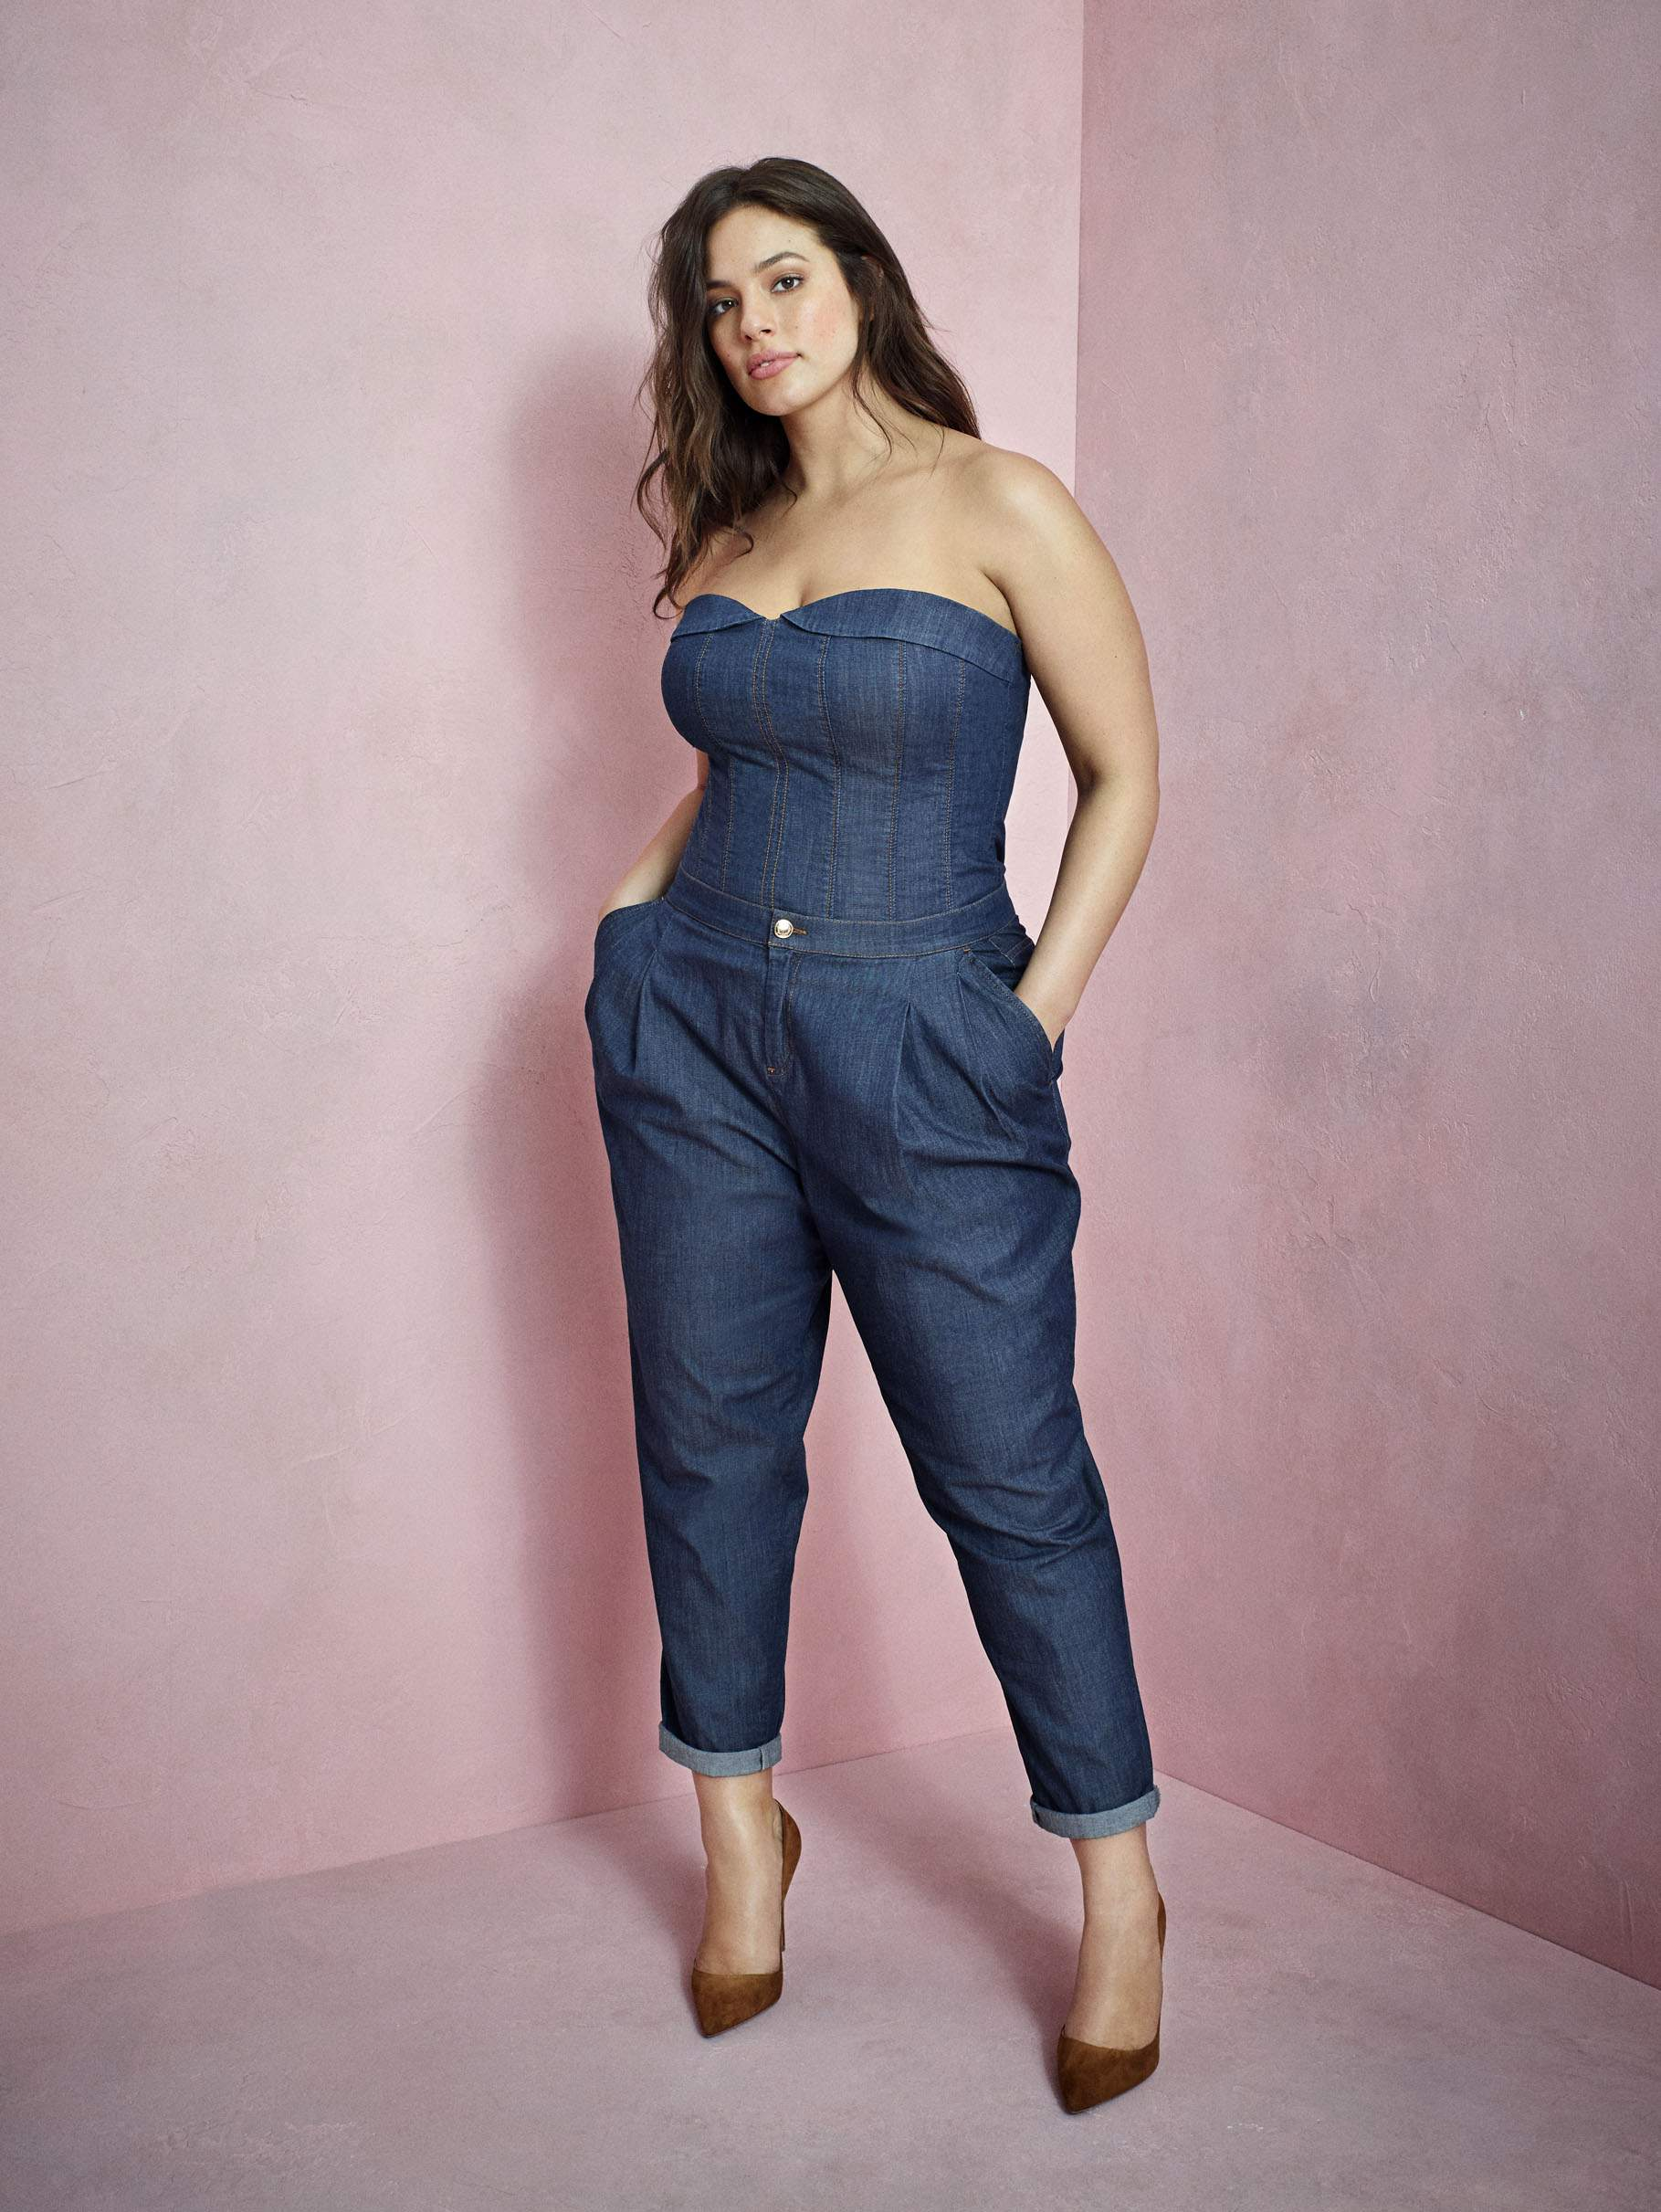 220231a0a7a The Ashley Graham X Marina Rinaldi 2018 Capsule Collection!